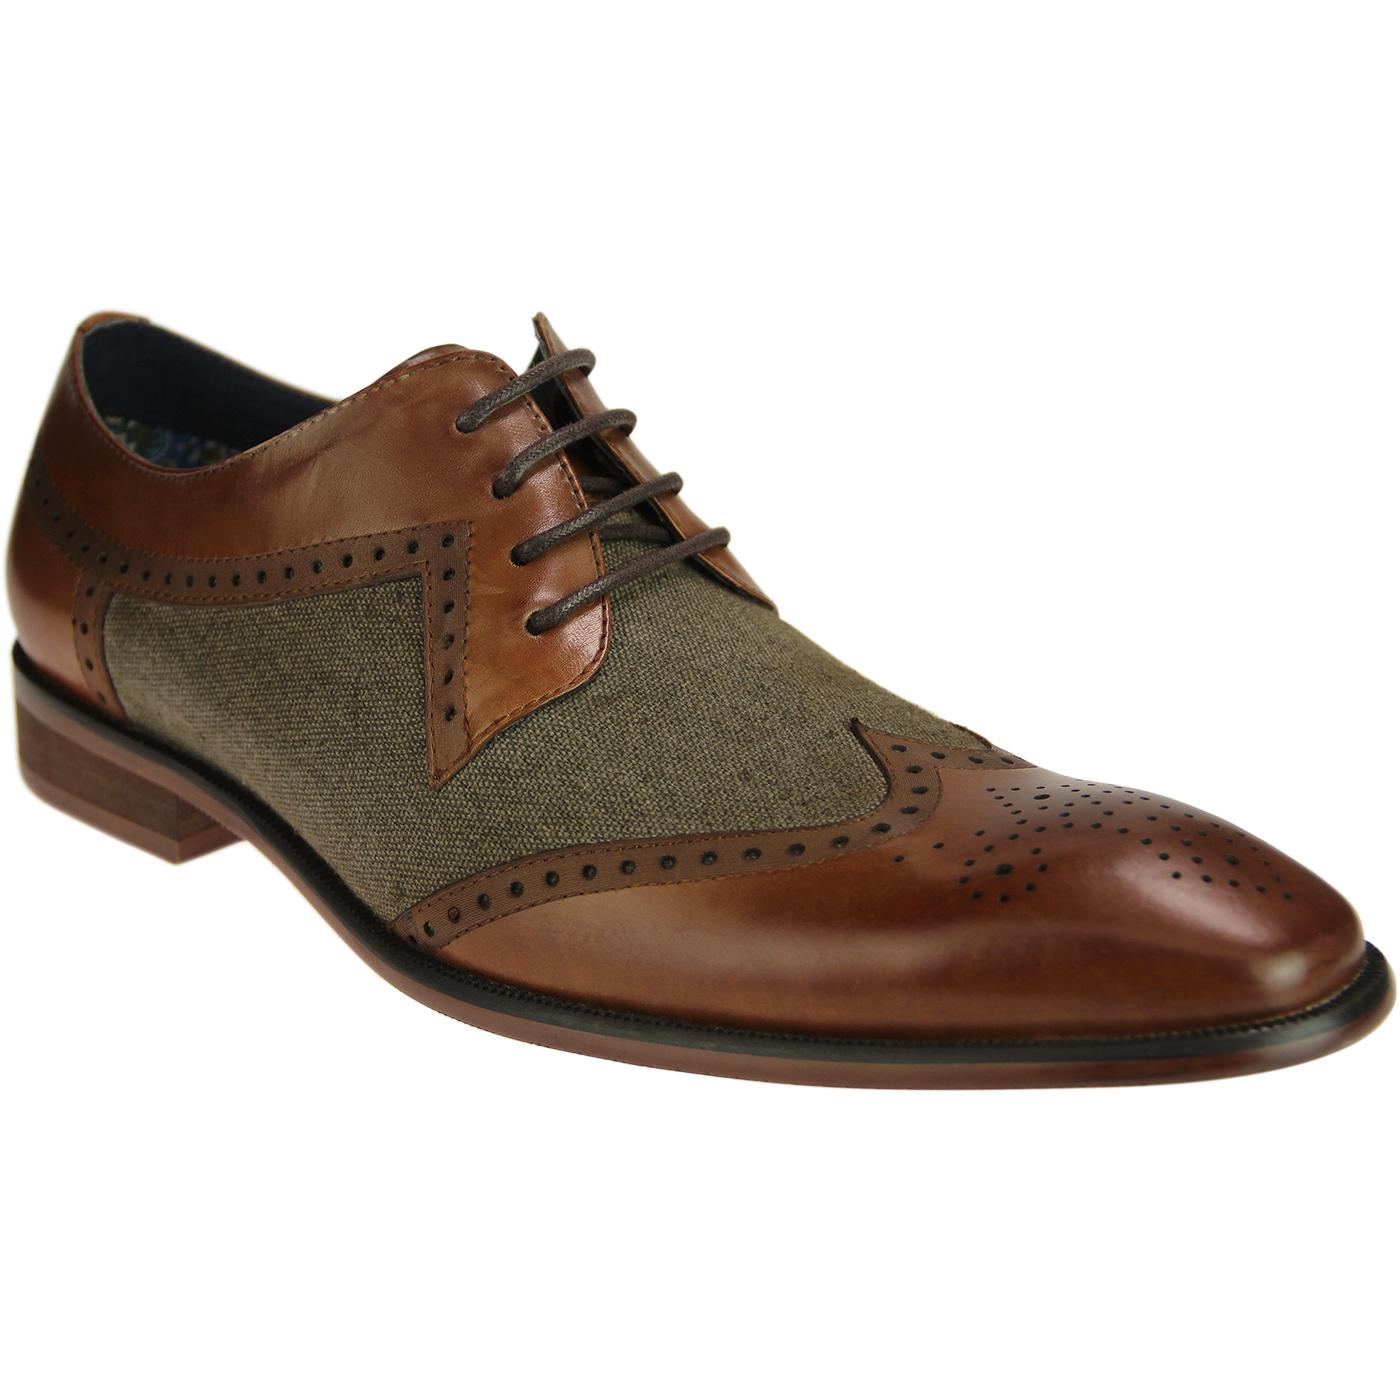 Nyland PAOLO VANDINI Mod Canvas/Leather Brogues T